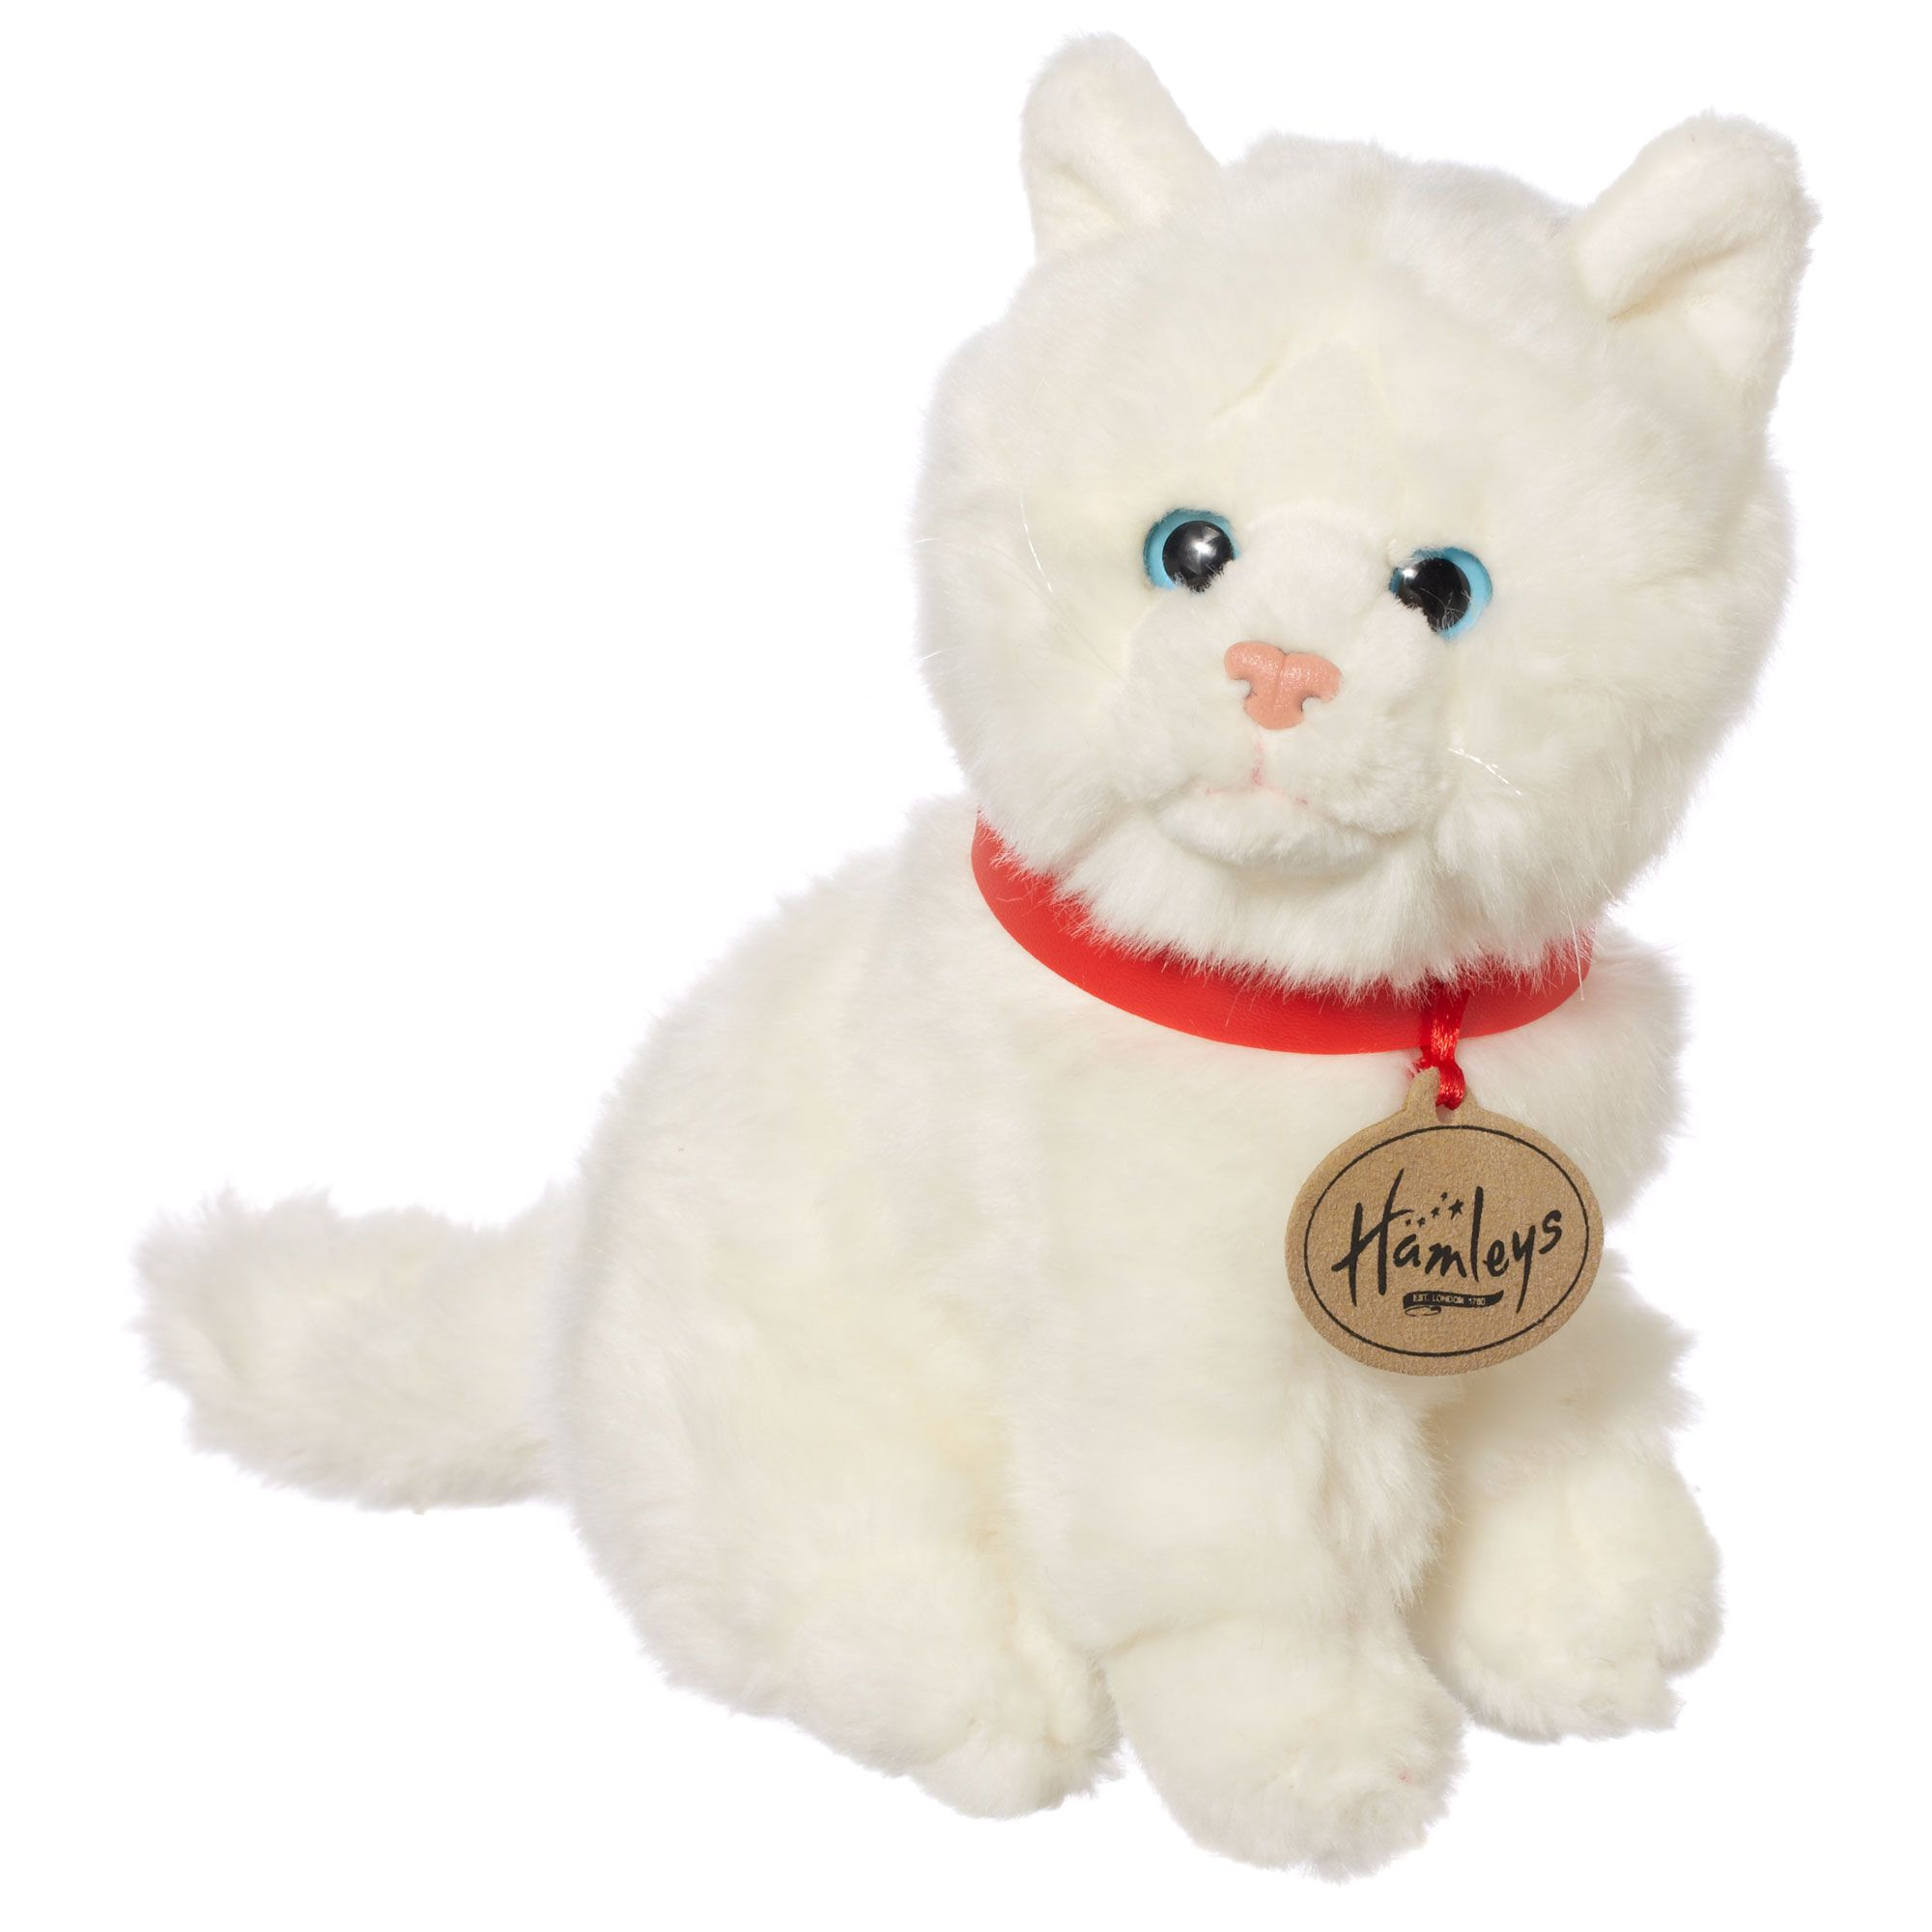 Hamleys Sitting White Cat Soft Toy